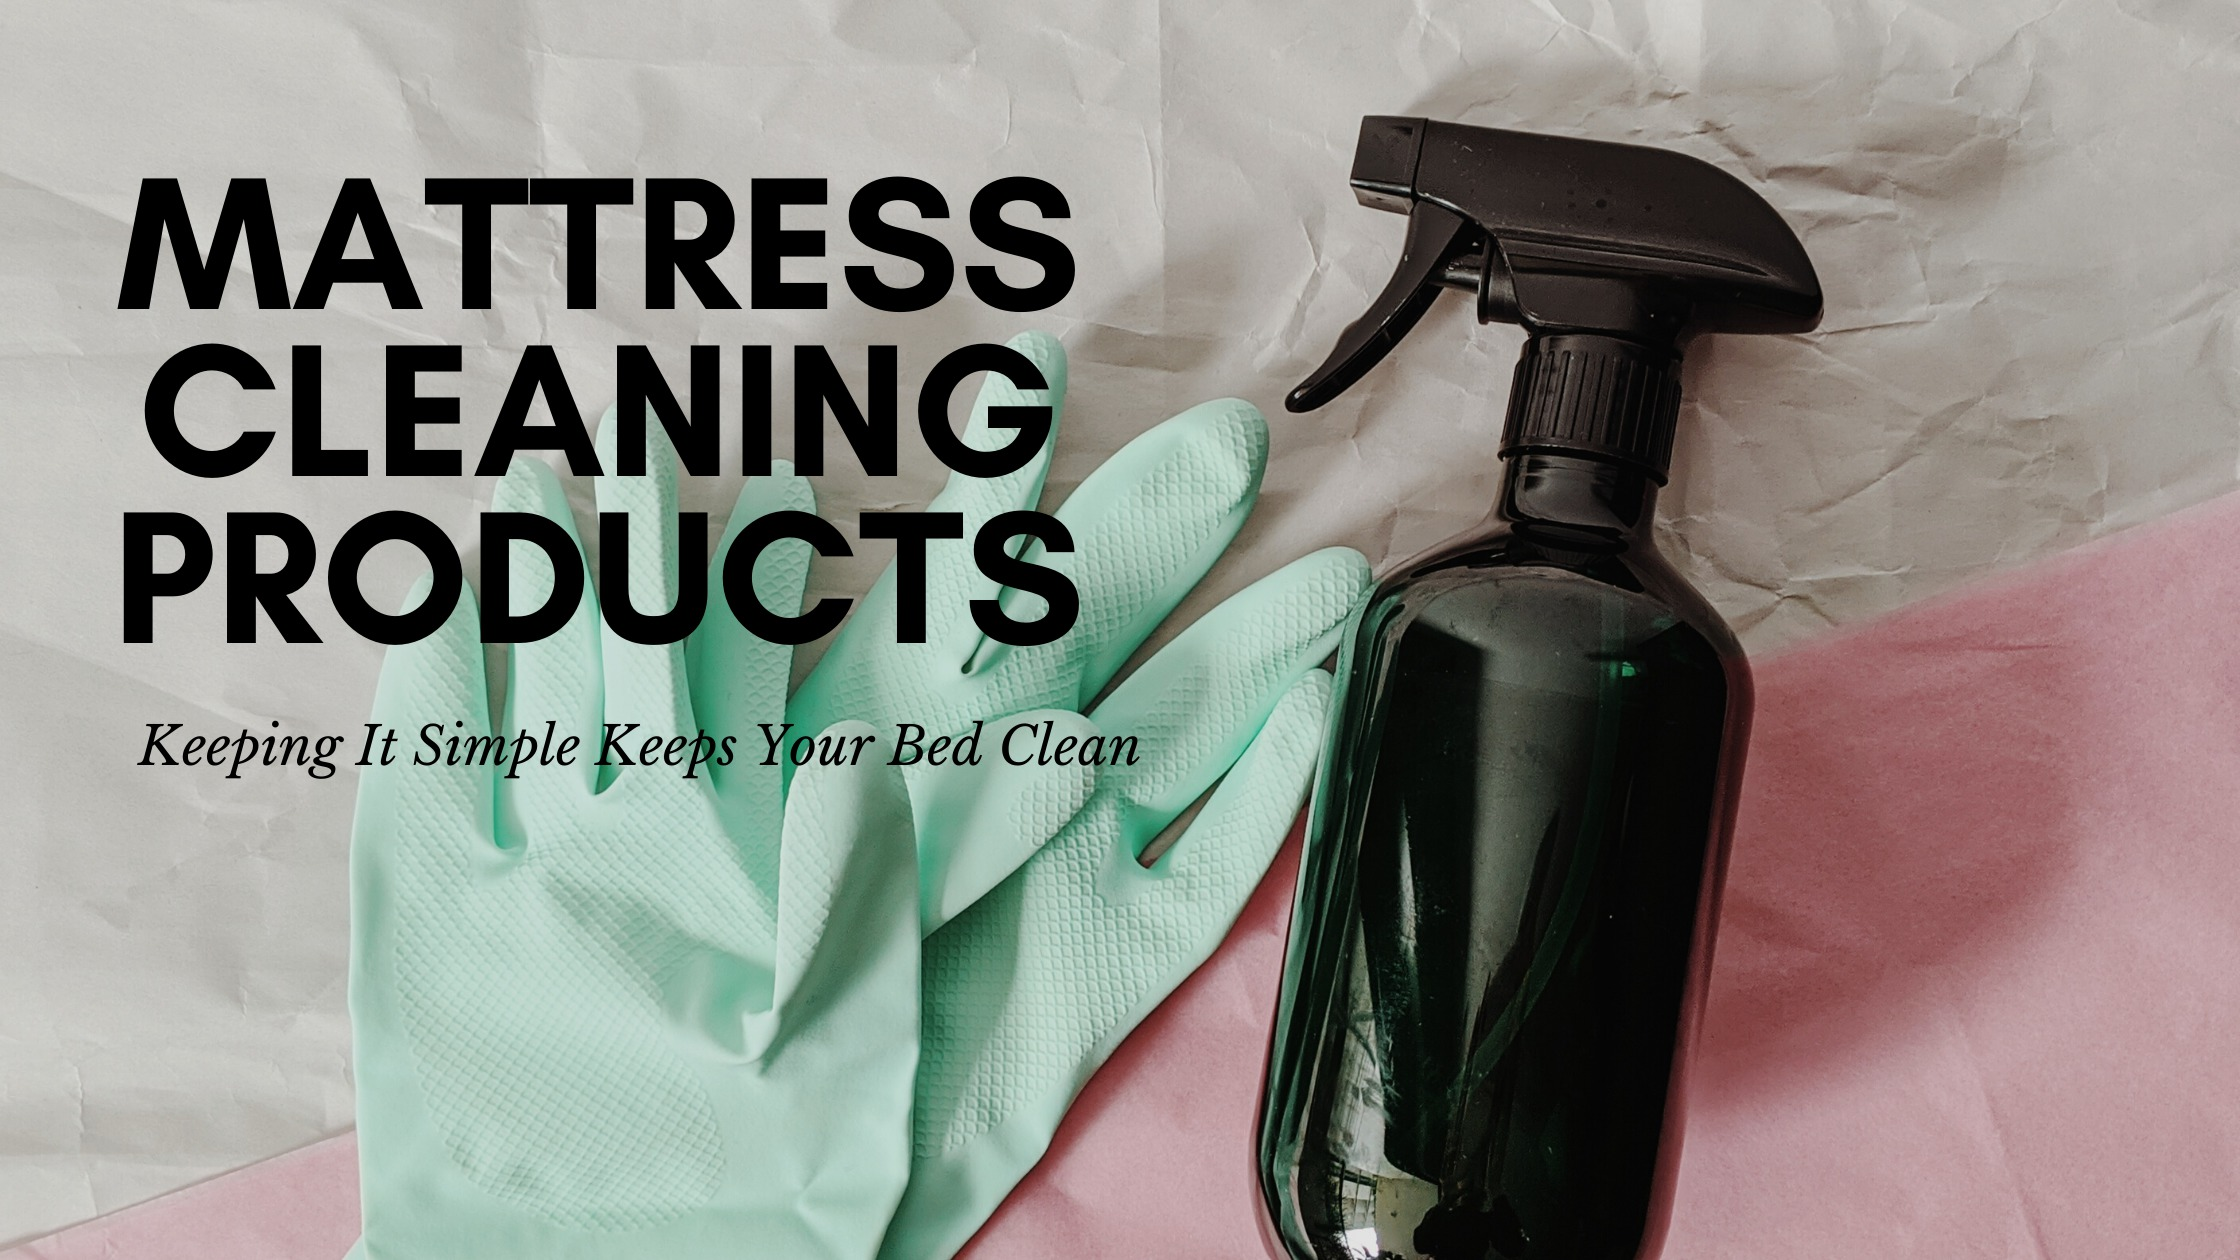 Mattress Cleaning Products